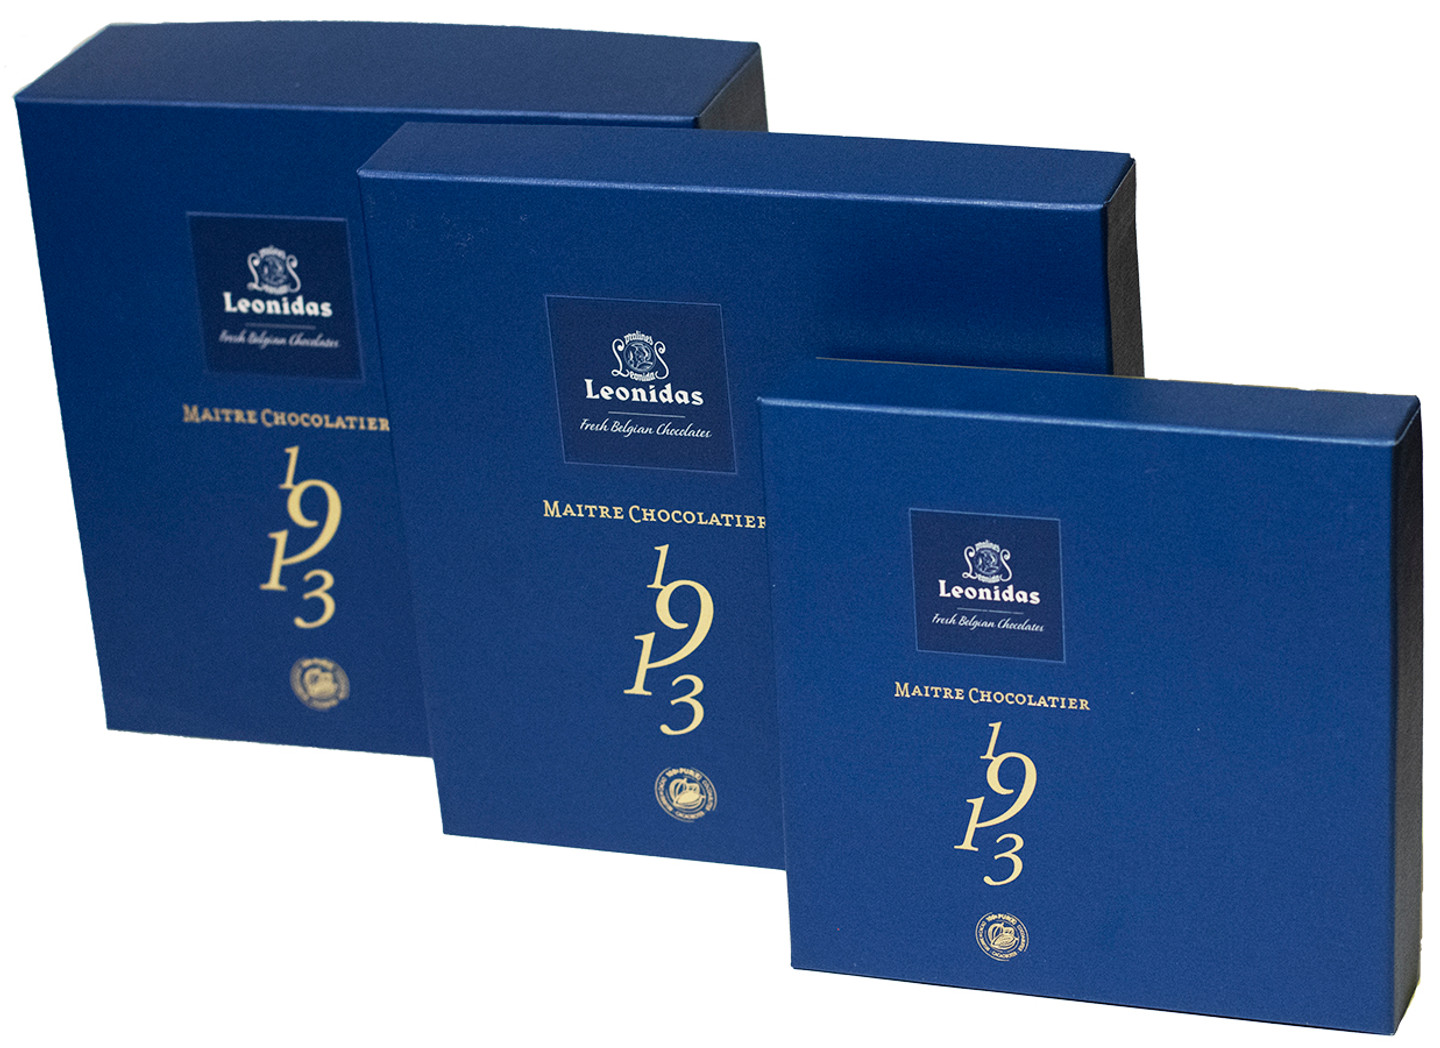 1913 Blue Heritage Assortment of 16, 20 or 32 chocolates